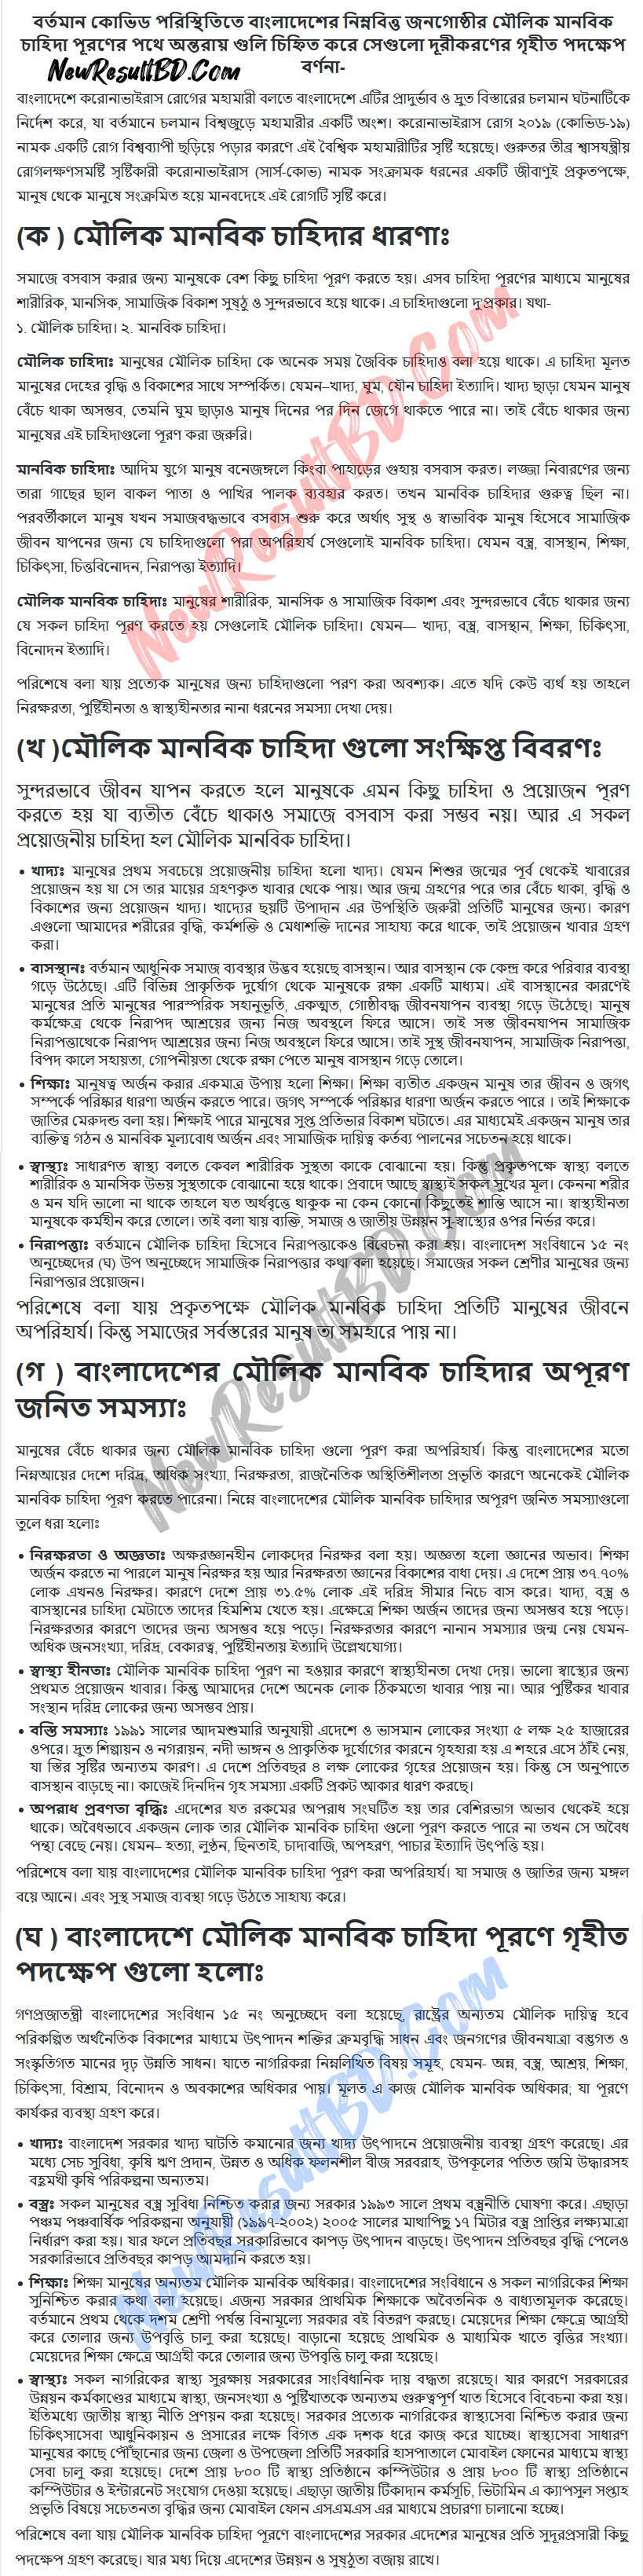 HSC Social Work Assignment Answer for 5th, 3rd week of HSC-2021 candidate 5